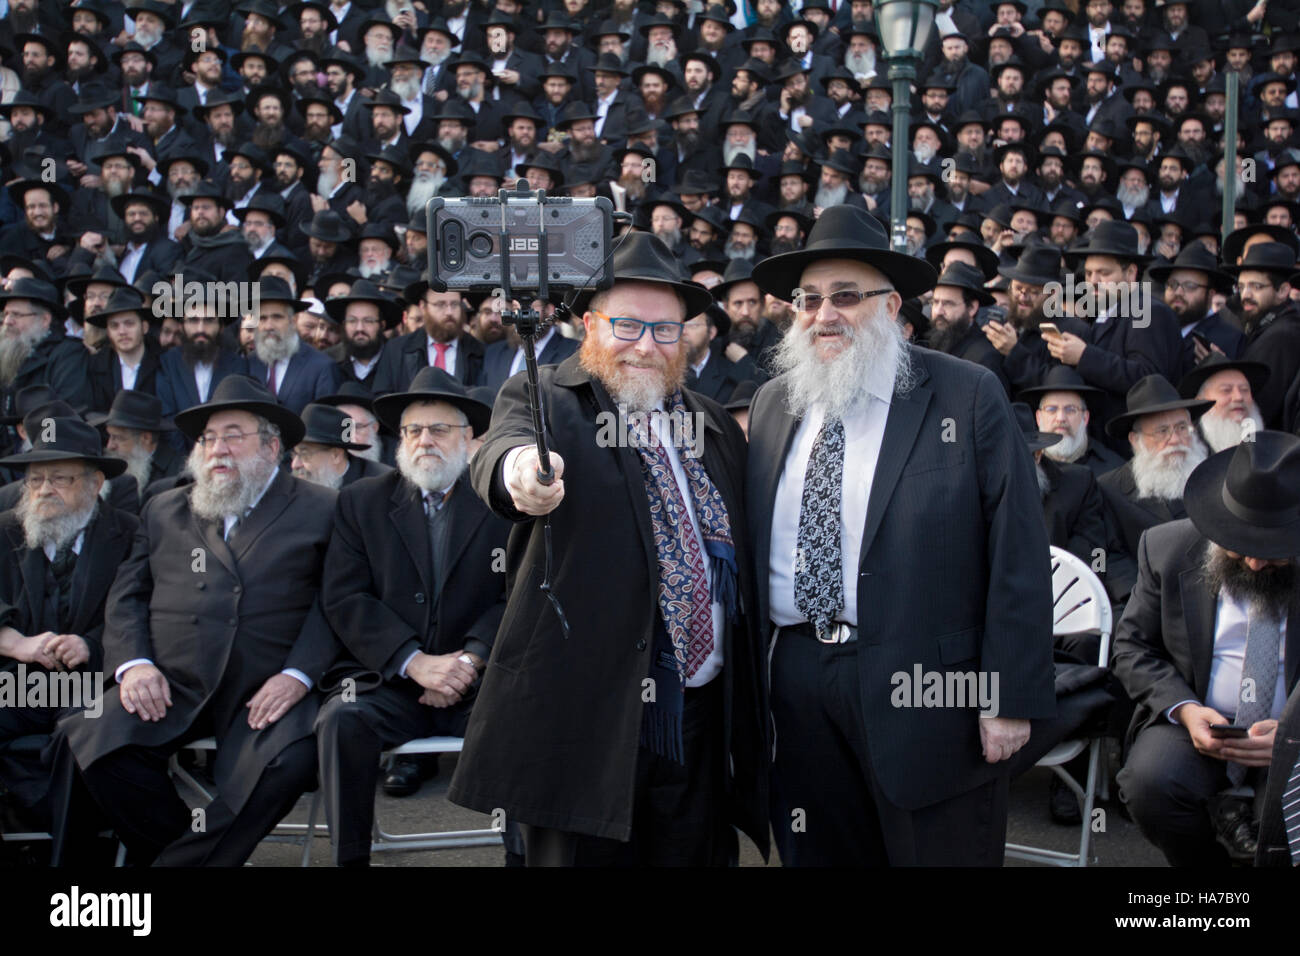 A rabbi taking a selfie at the annual group photos of the Lubavitch emissaries in Crown Heights, Brooklyn, New York - Stock Image